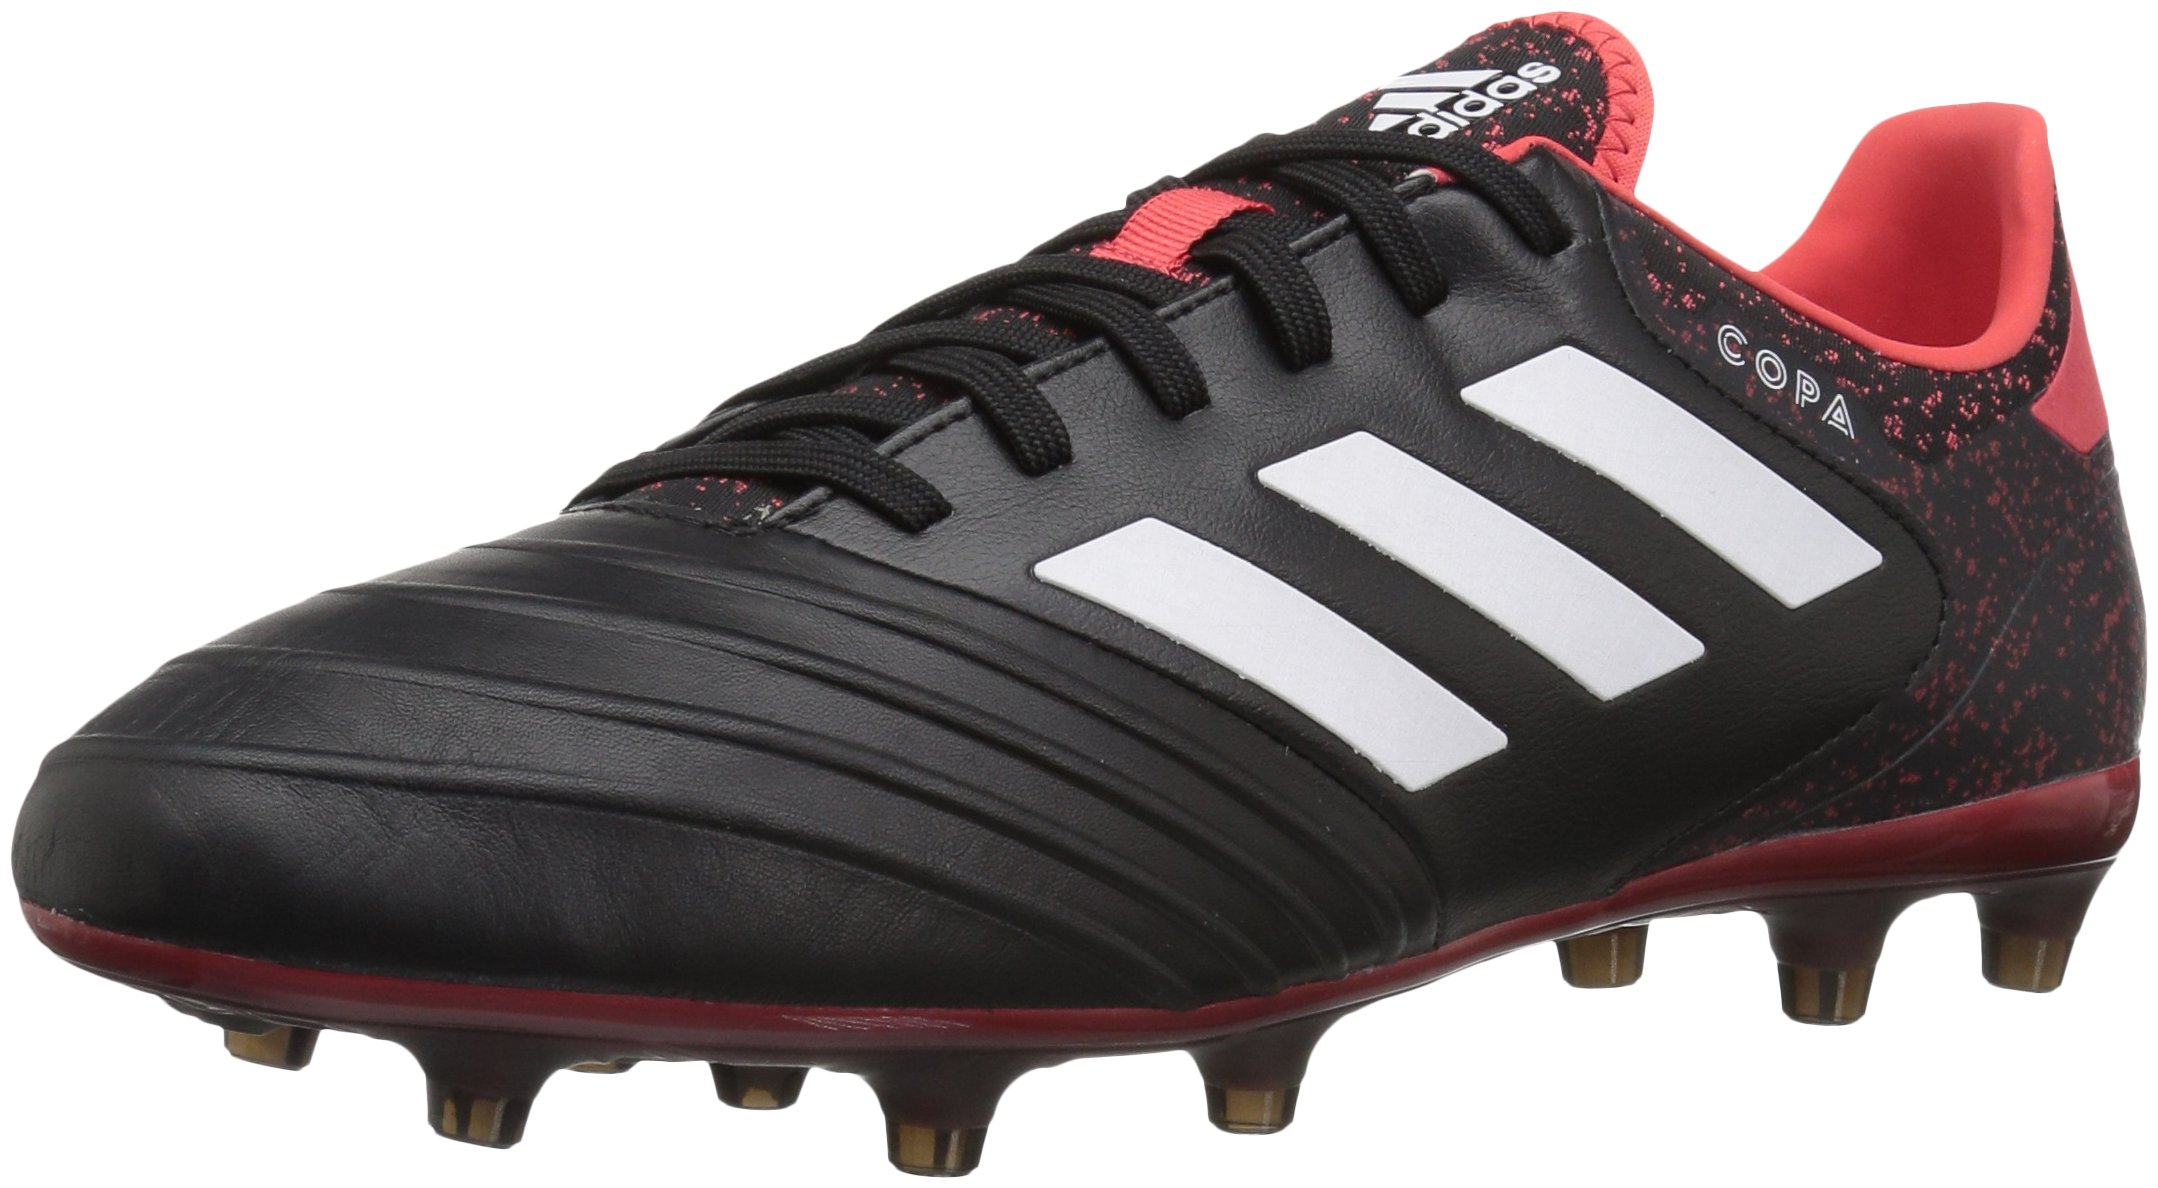 adidas Men's Copa 18.2 Firm Ground Soccer Shoe, Black/White/Real Coral, 12 M US by adidas